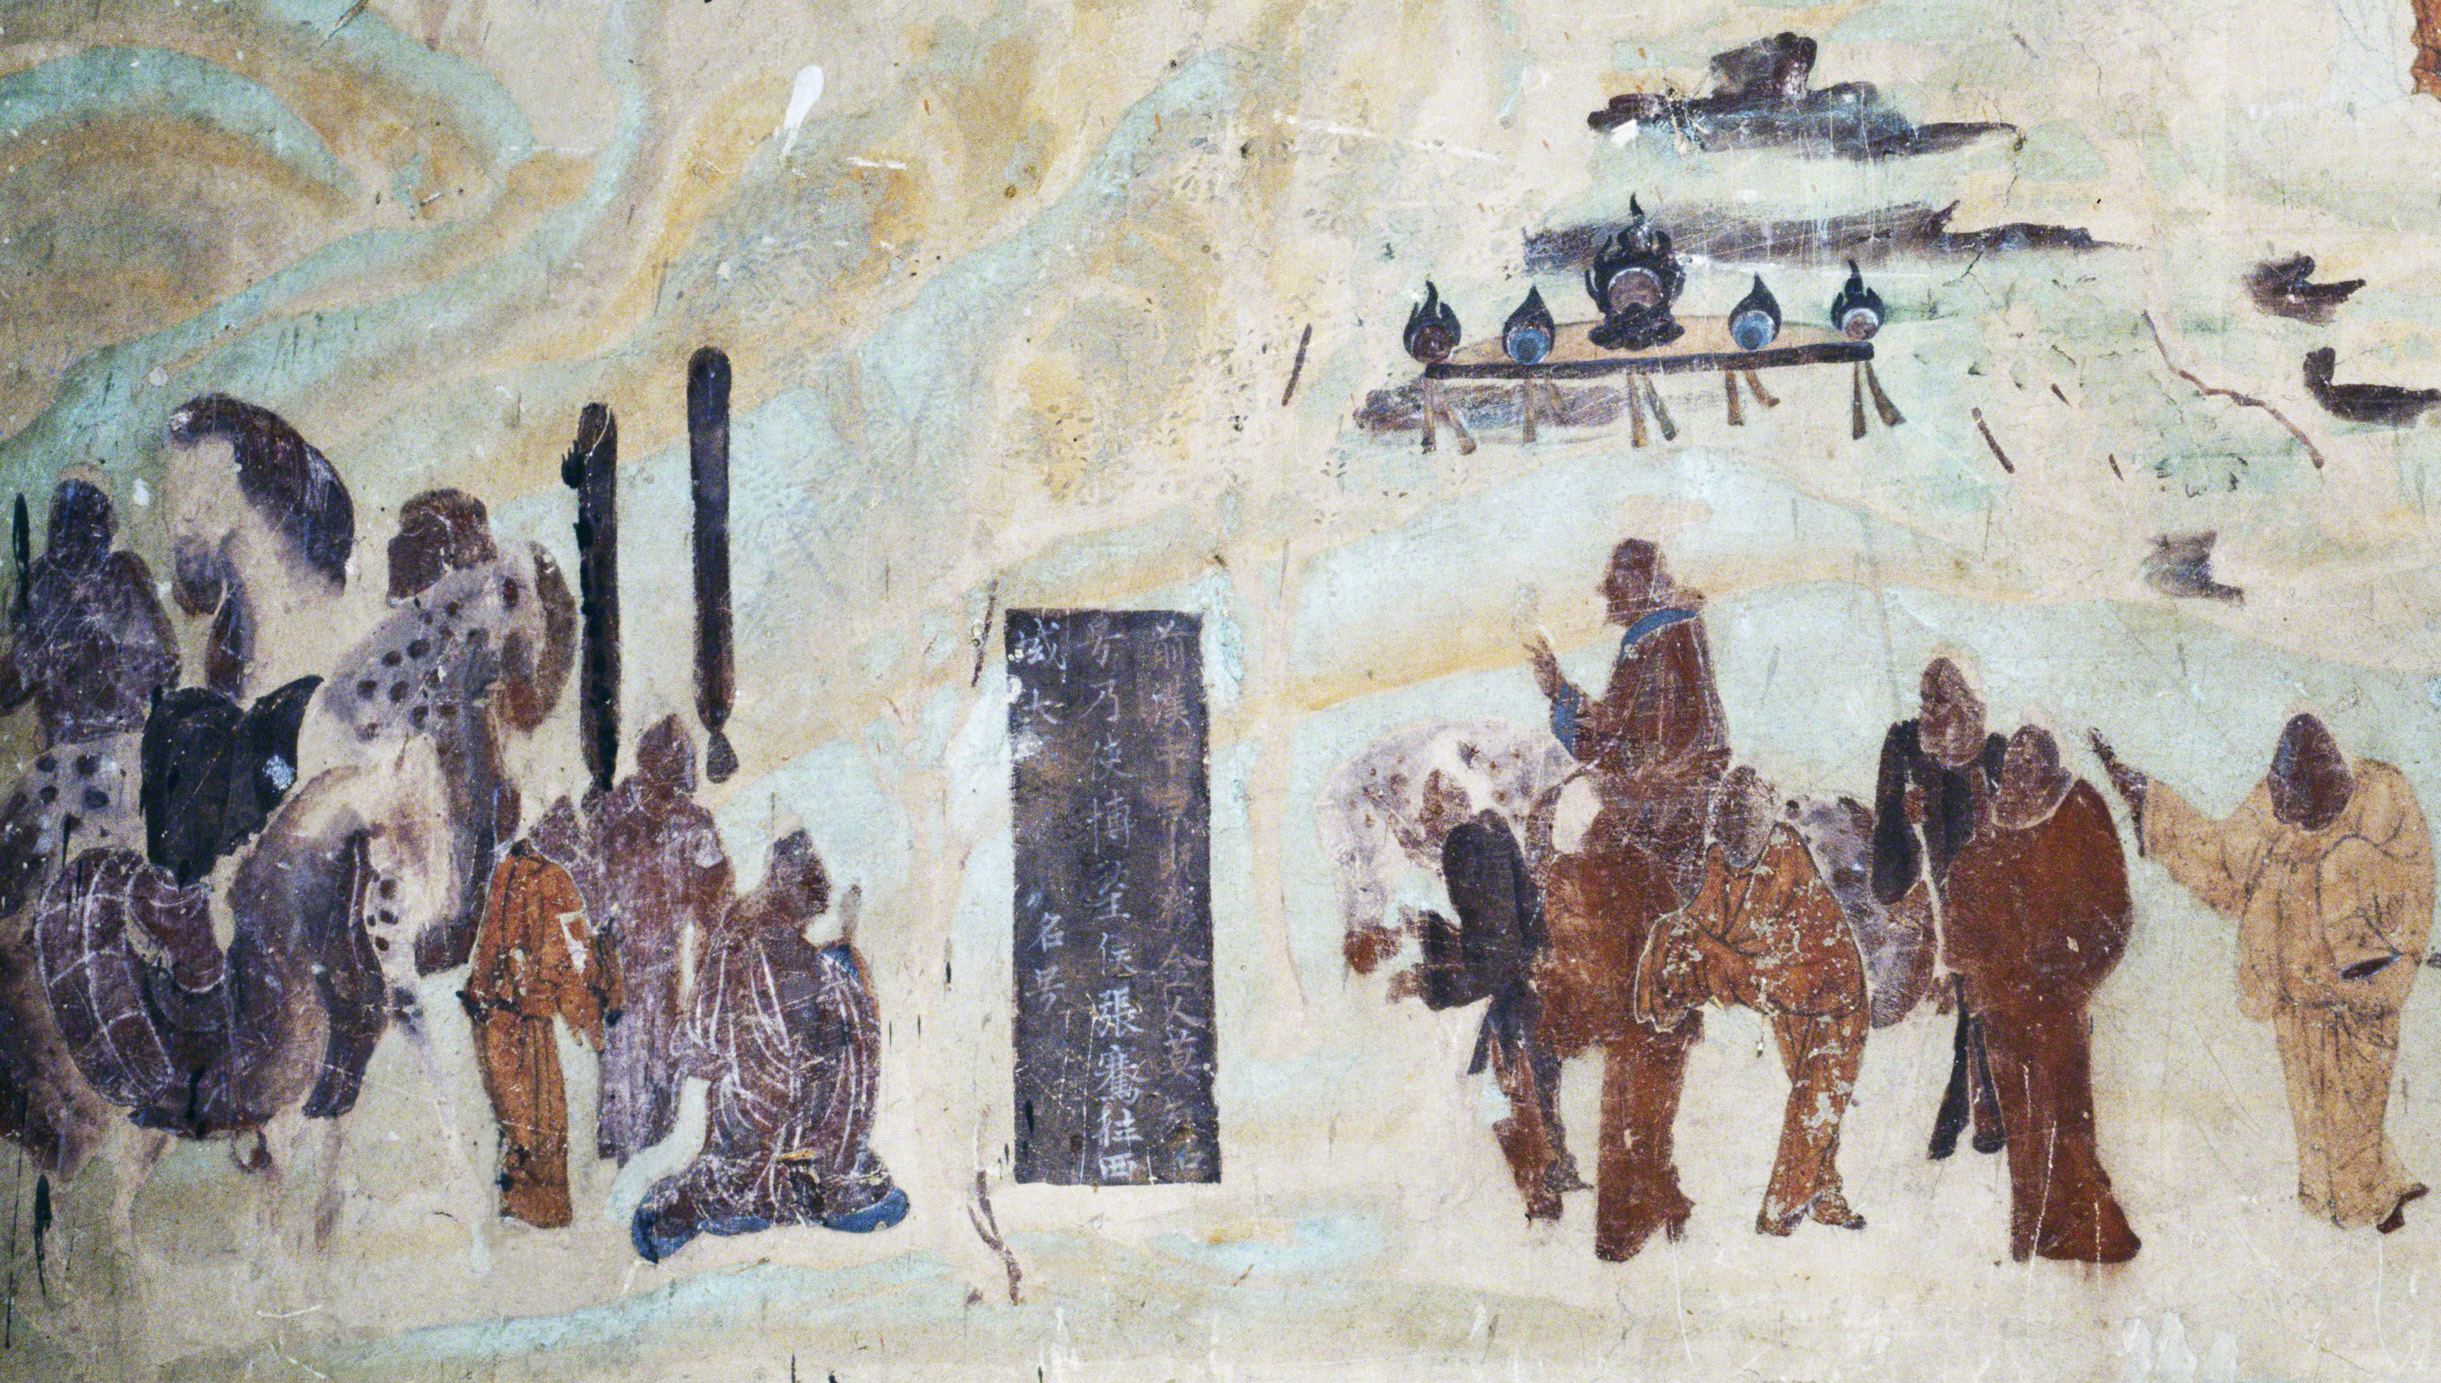 Detail of Emperor Wu on a horse sending off Zhang Qian who is kneeling,north wall fresco in Mogao Cave 323. Early Tang. Image Courtesy of the Dunhuang Academy.